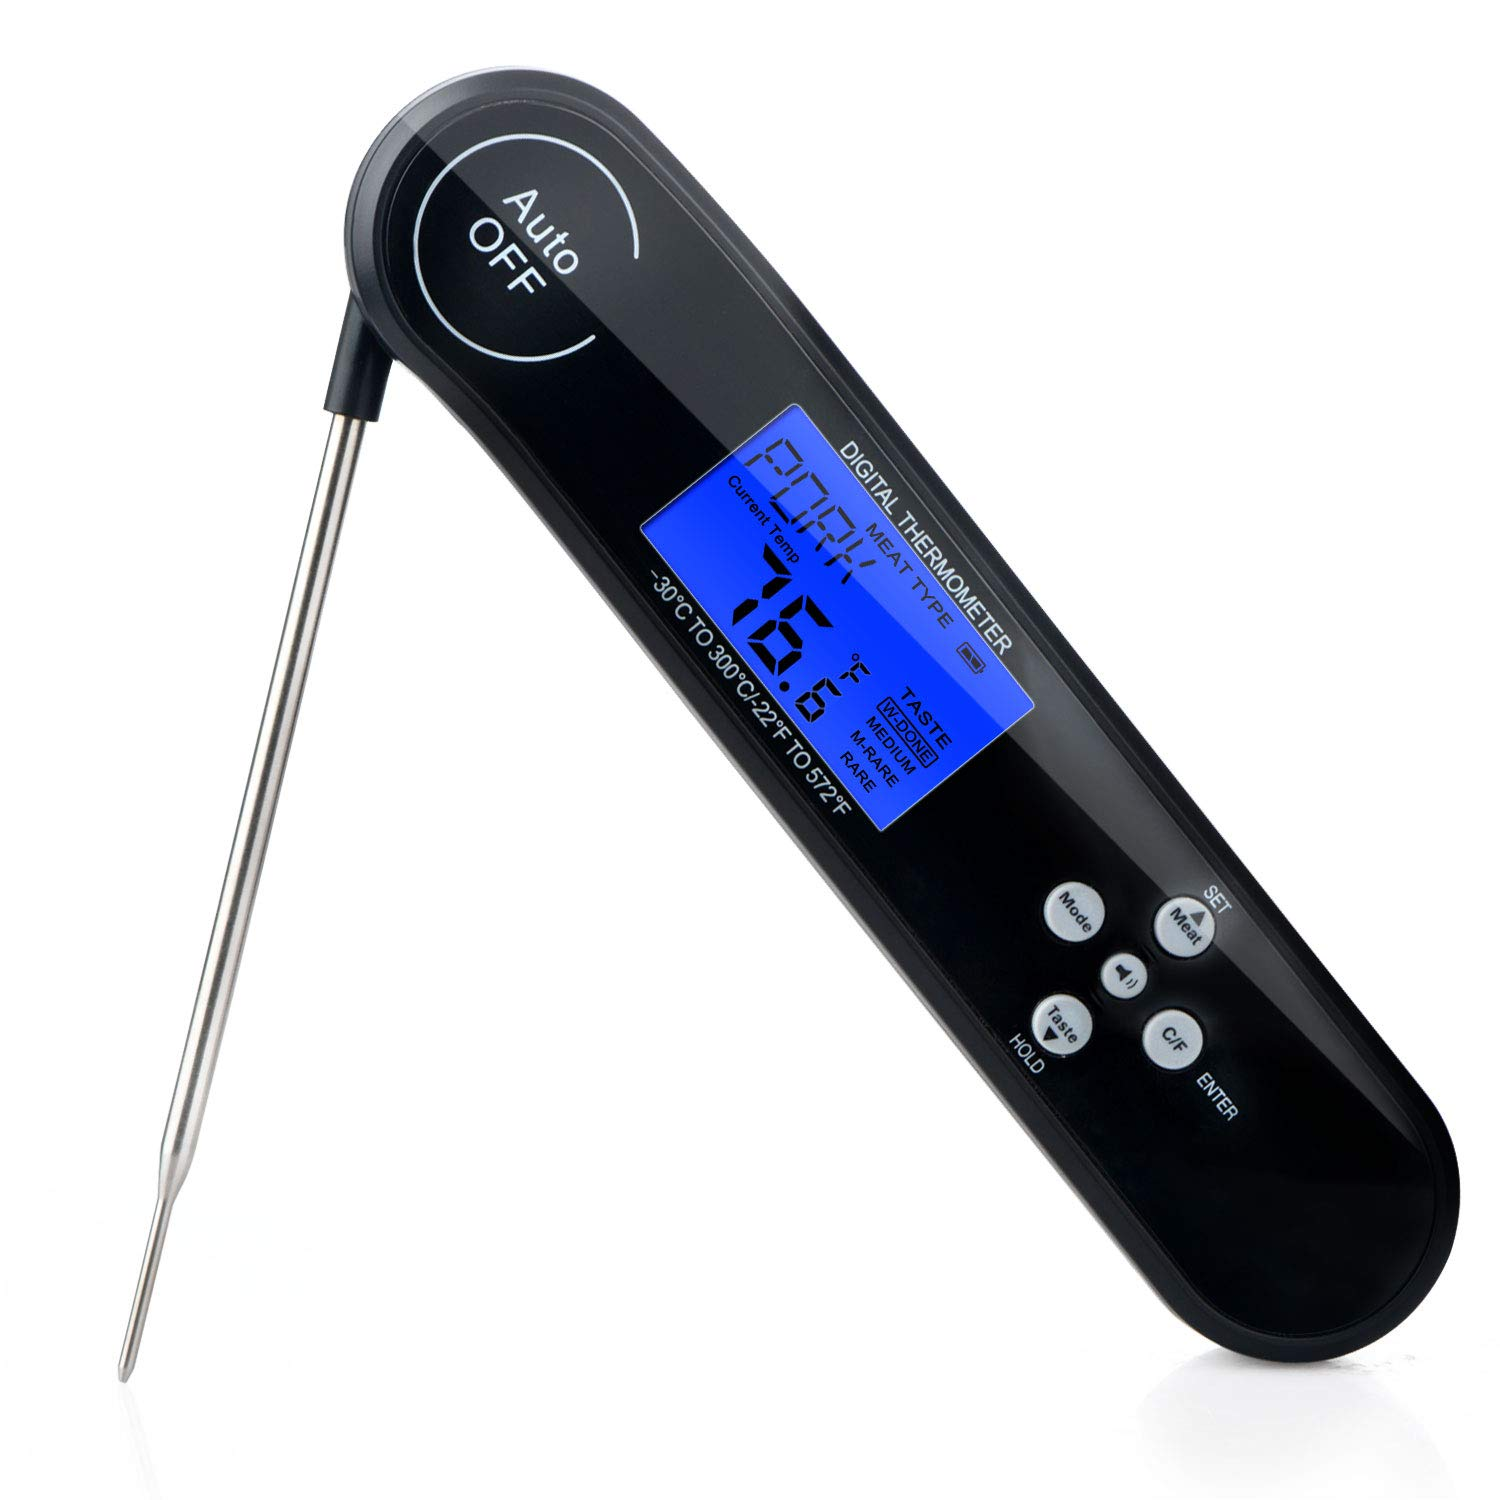 Instant Talking Meat Digital Thermometer,Read Food Temps Fast and Clear Voice,Waterproof Backlit LCD Display and Folding Probe,Perfect for Food Kitchen Cooking BBQ Grill PinnacleT1